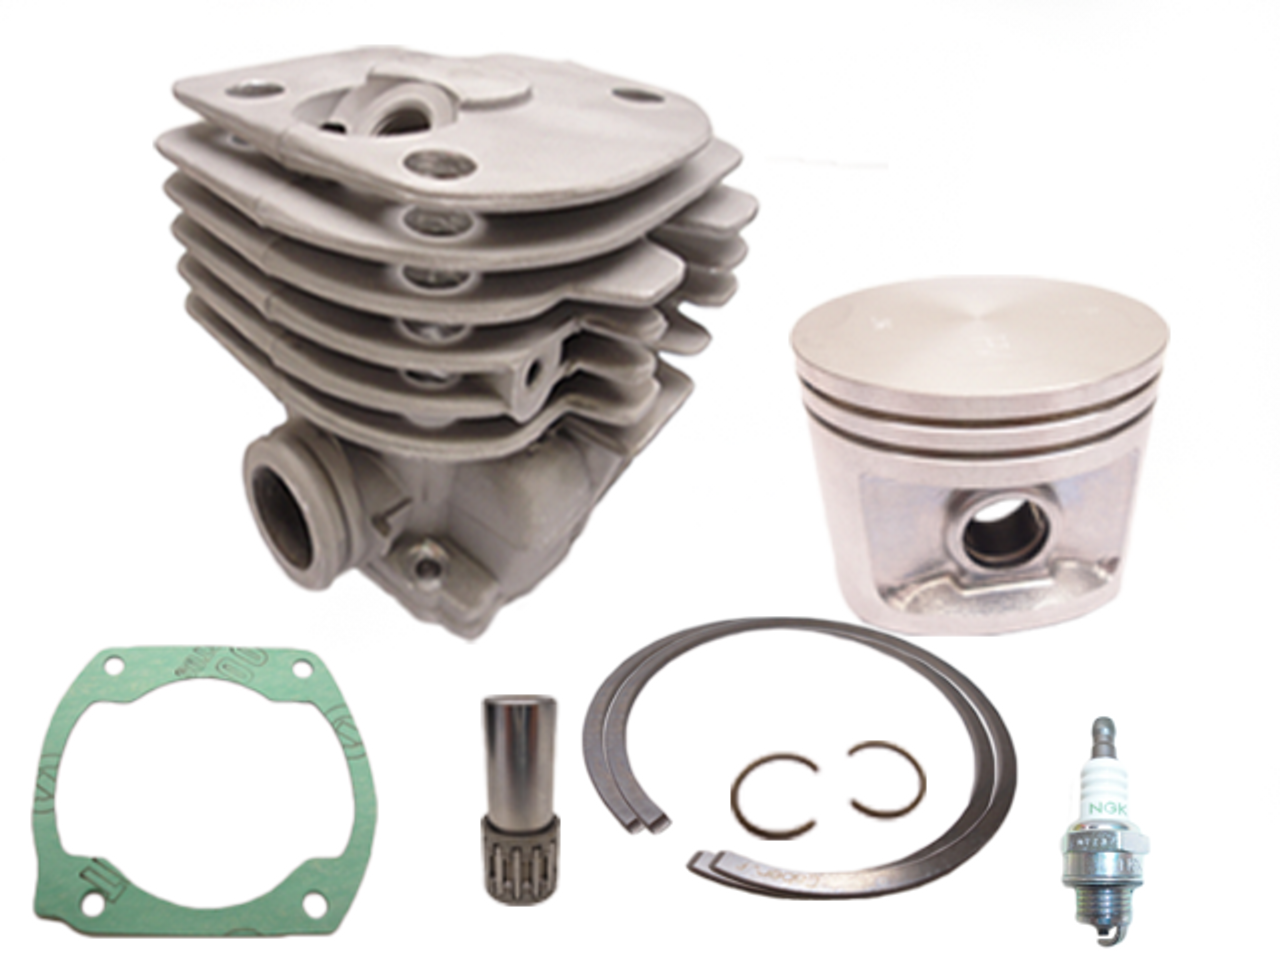 Adefol 52mm Cylinder Piston Kit for Husqvarna 372XP 371 365 362 375K Big Bore Chainsaw Replace Parts 503 93 93 72